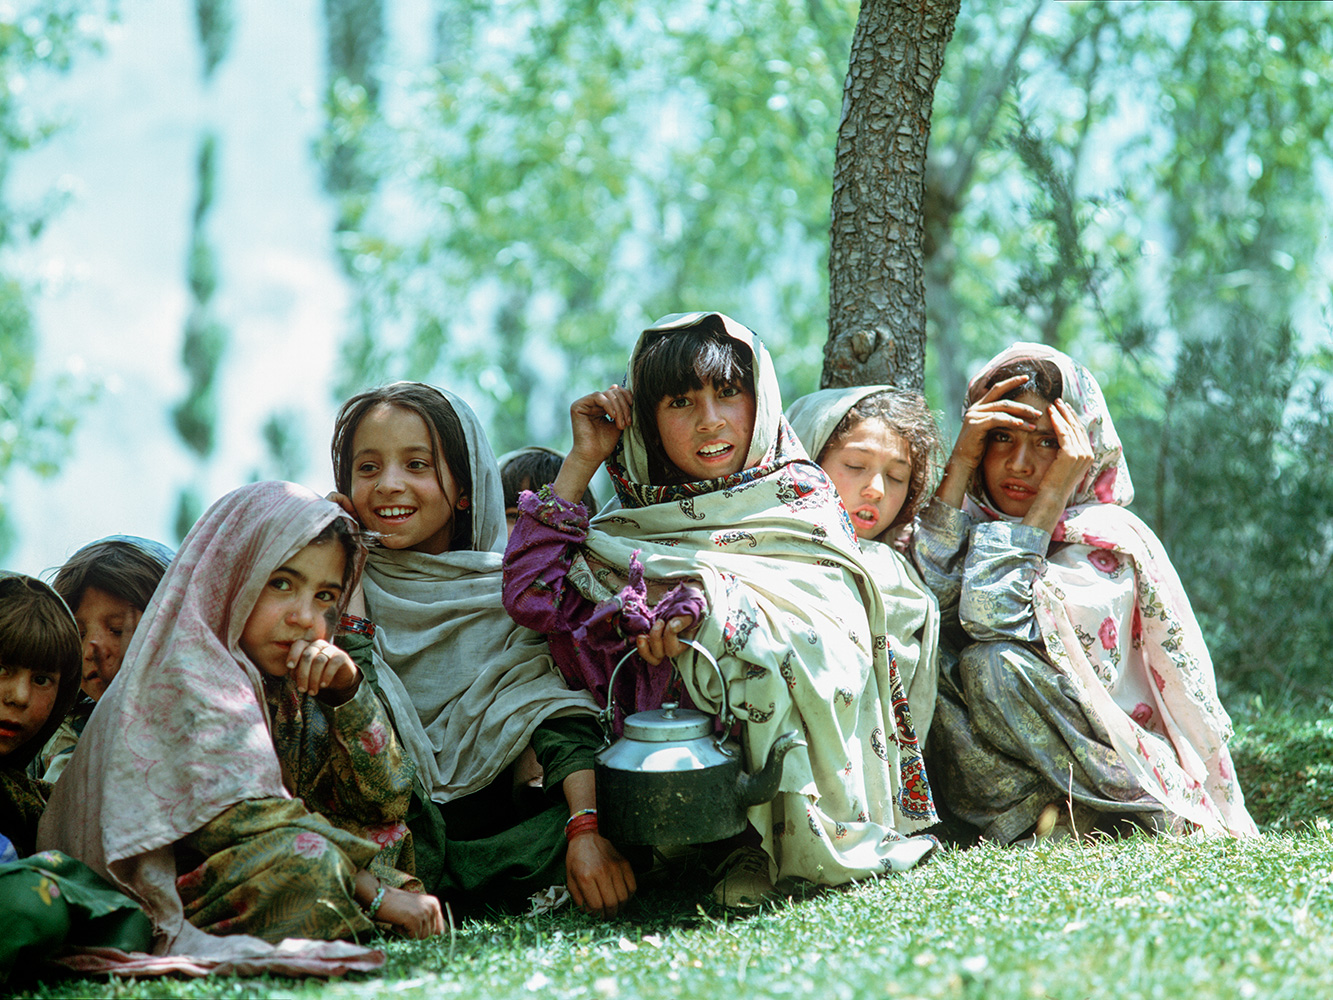 Girls from this village beneath Tirich Mir in ChitralNWFP, PakistanBronica ETRSi, 75mm, Fuji Velvia